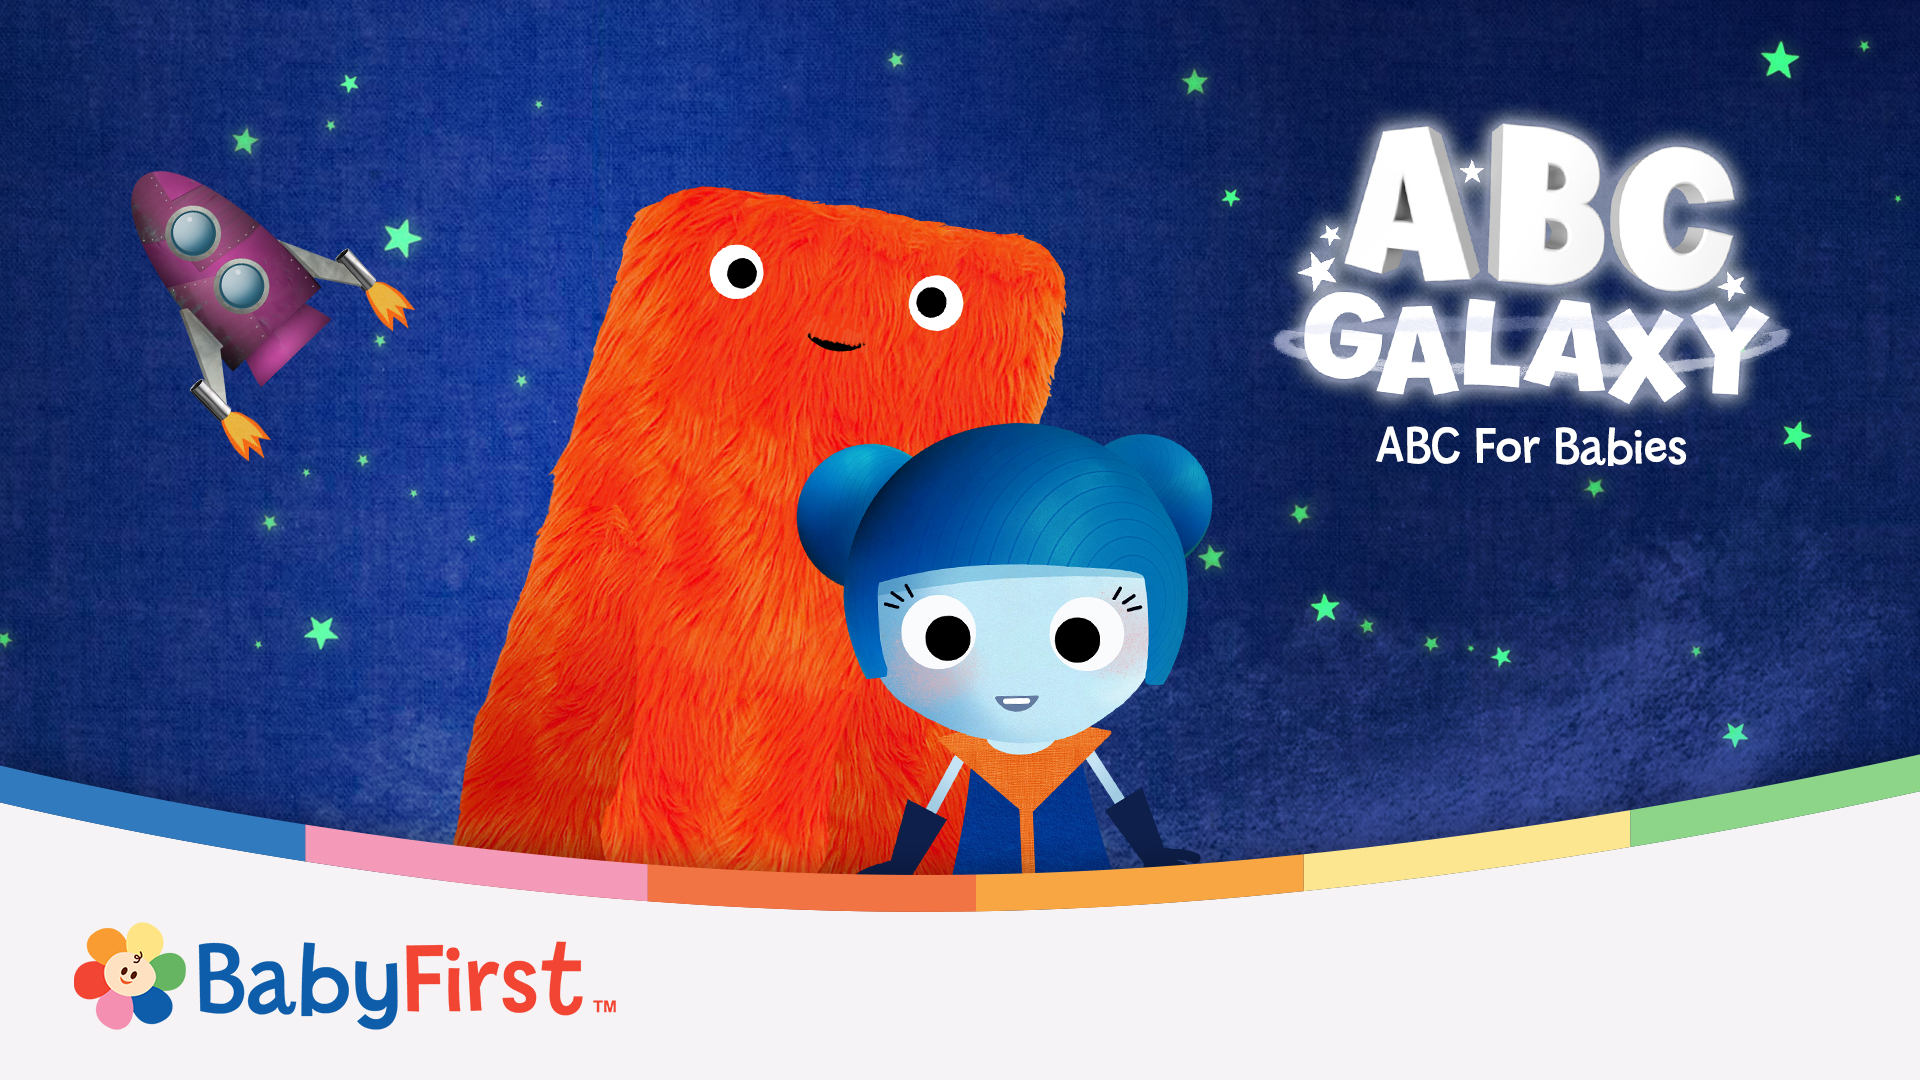 ABC Galaxy: ABC For Babies